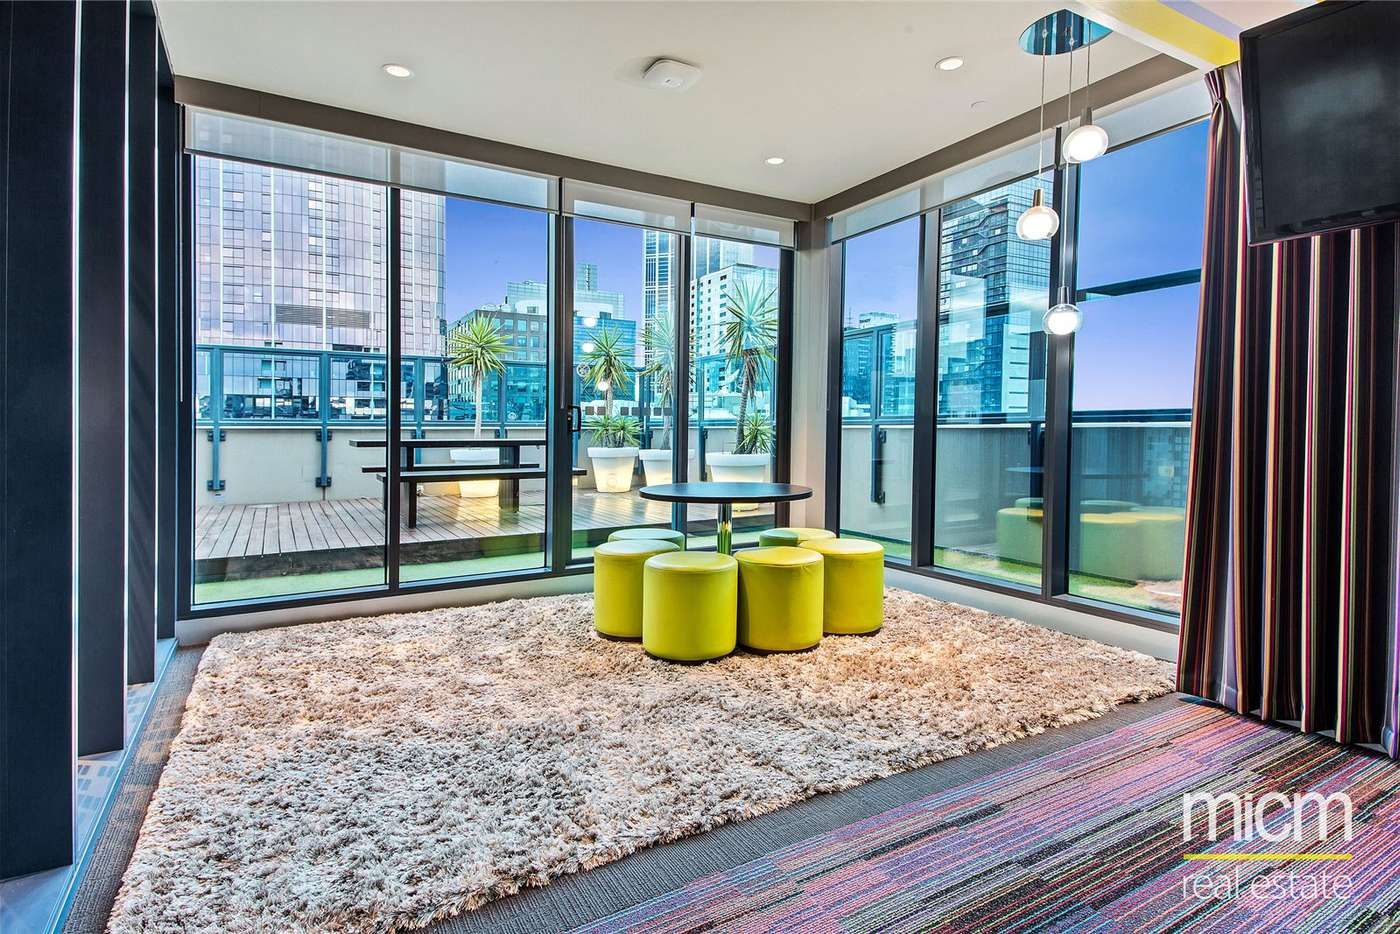 Seventh view of Homely studio listing, 509/181 ABeckett Street, Melbourne VIC 3000